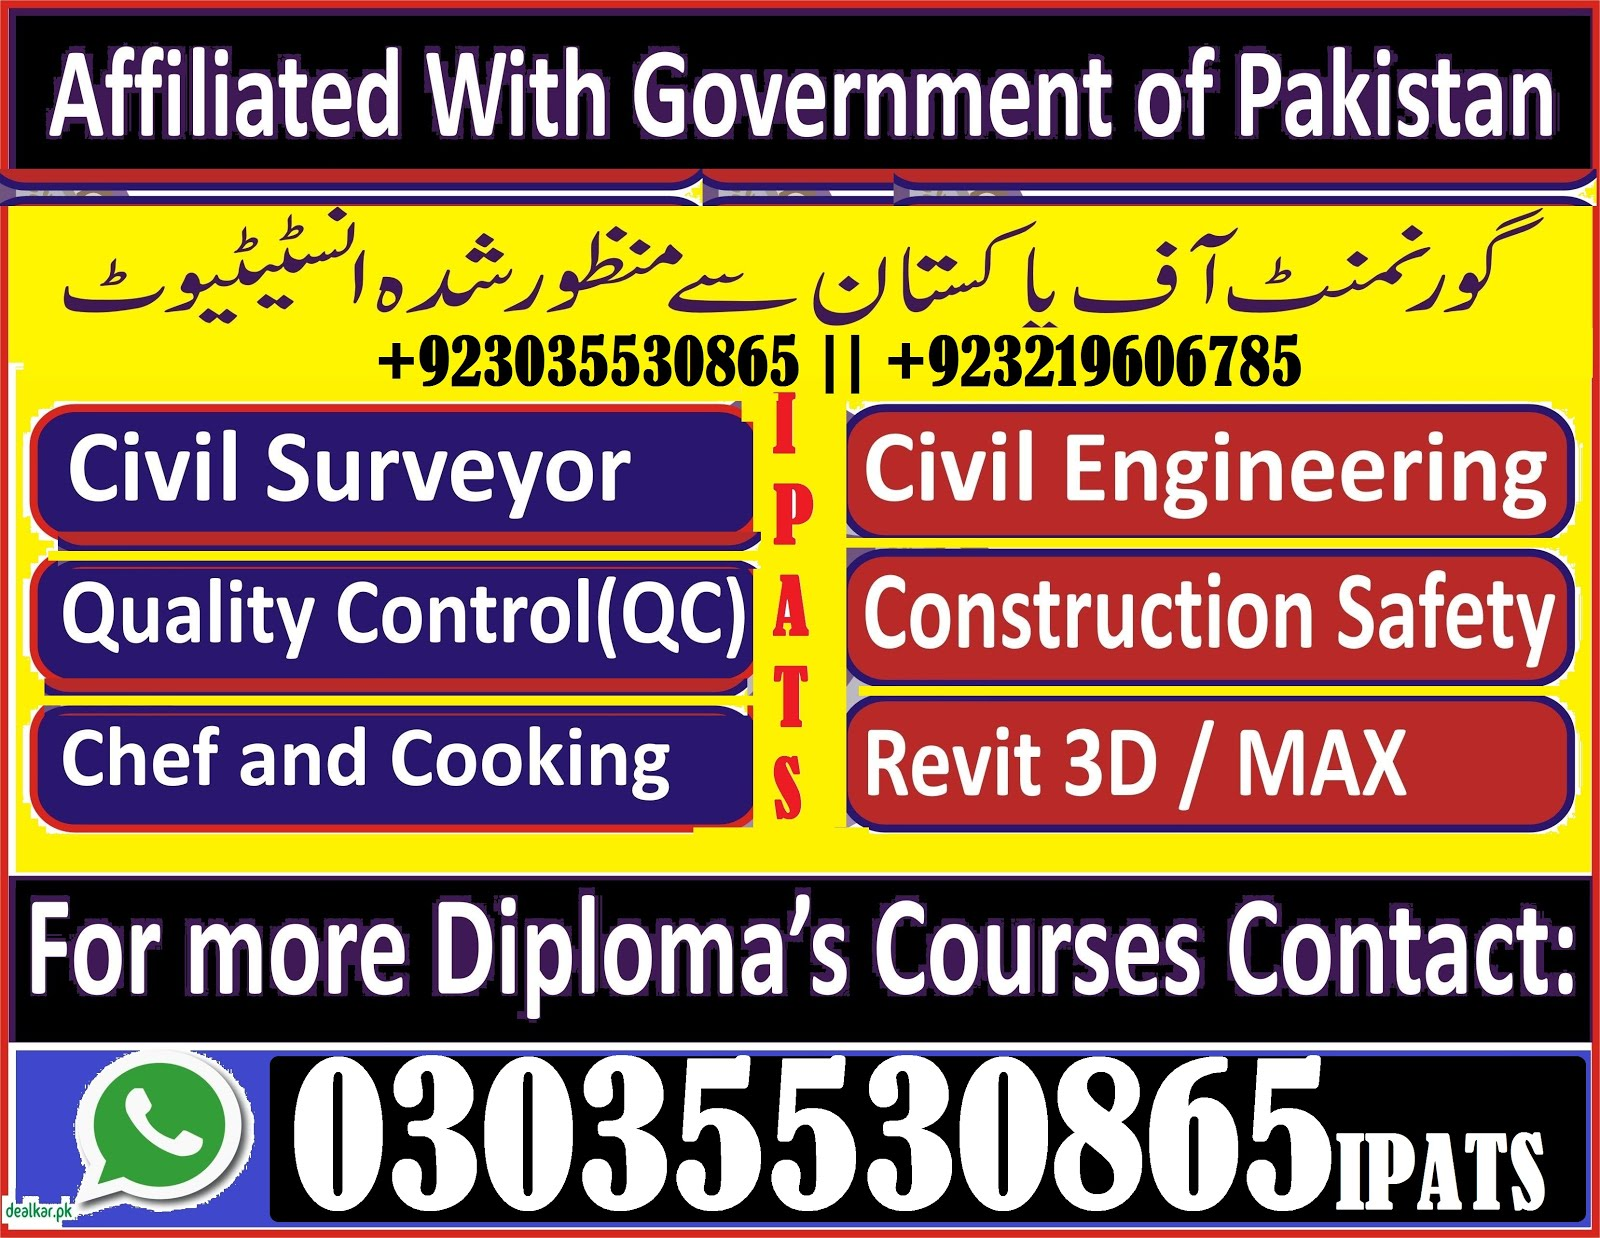 QC Inspector Advance Professional Course in Gujarkhan3219606785